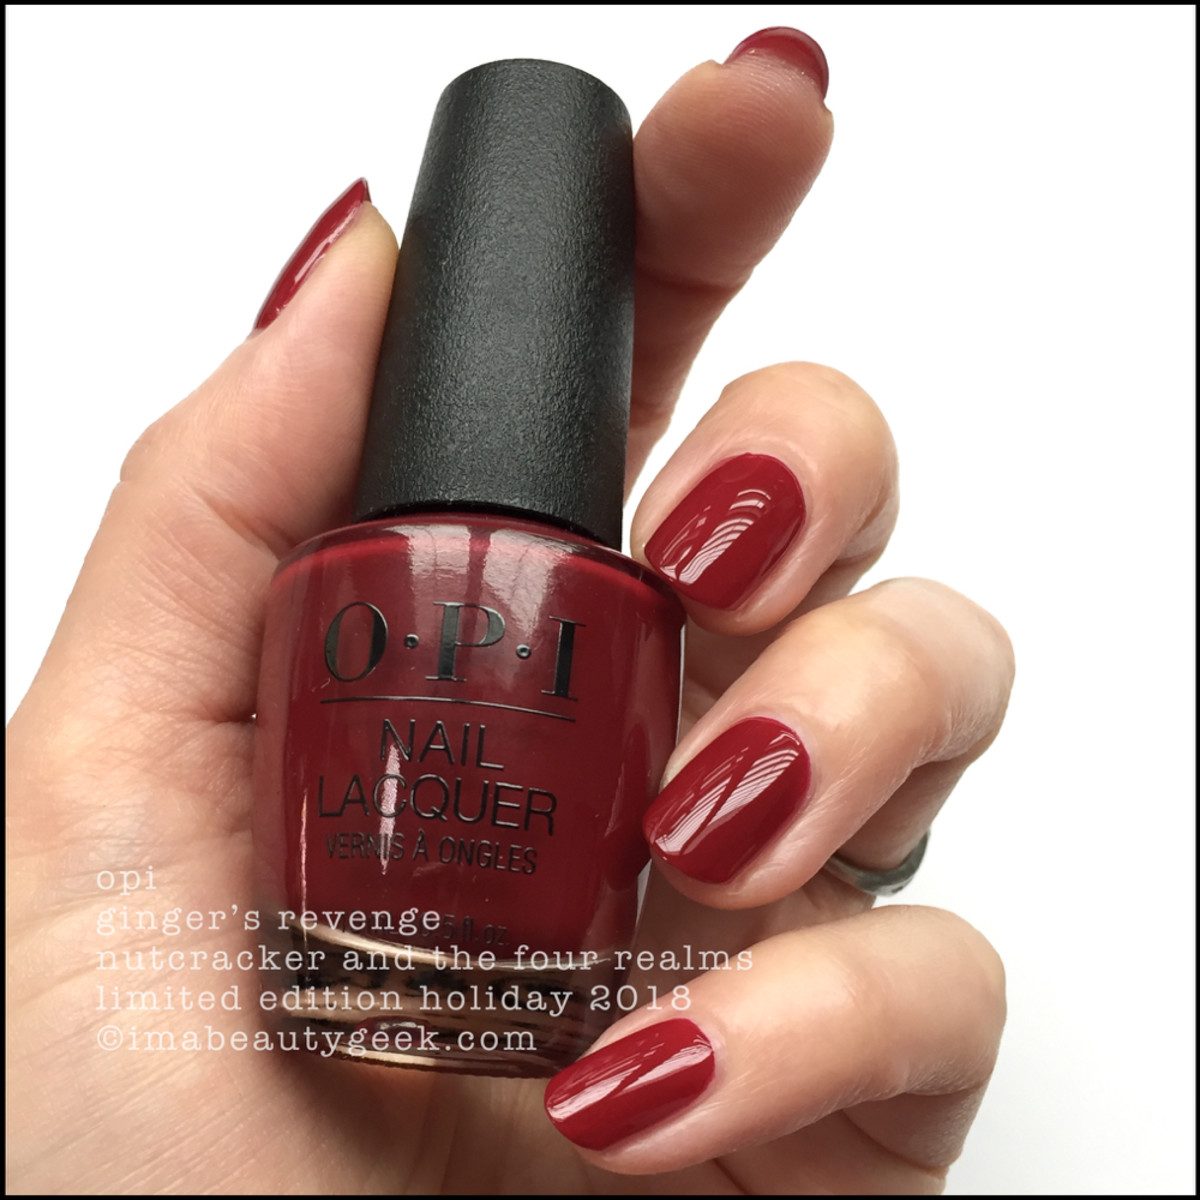 OPI Ginger's Revenge - OPI Nutcracker Holiday 2018